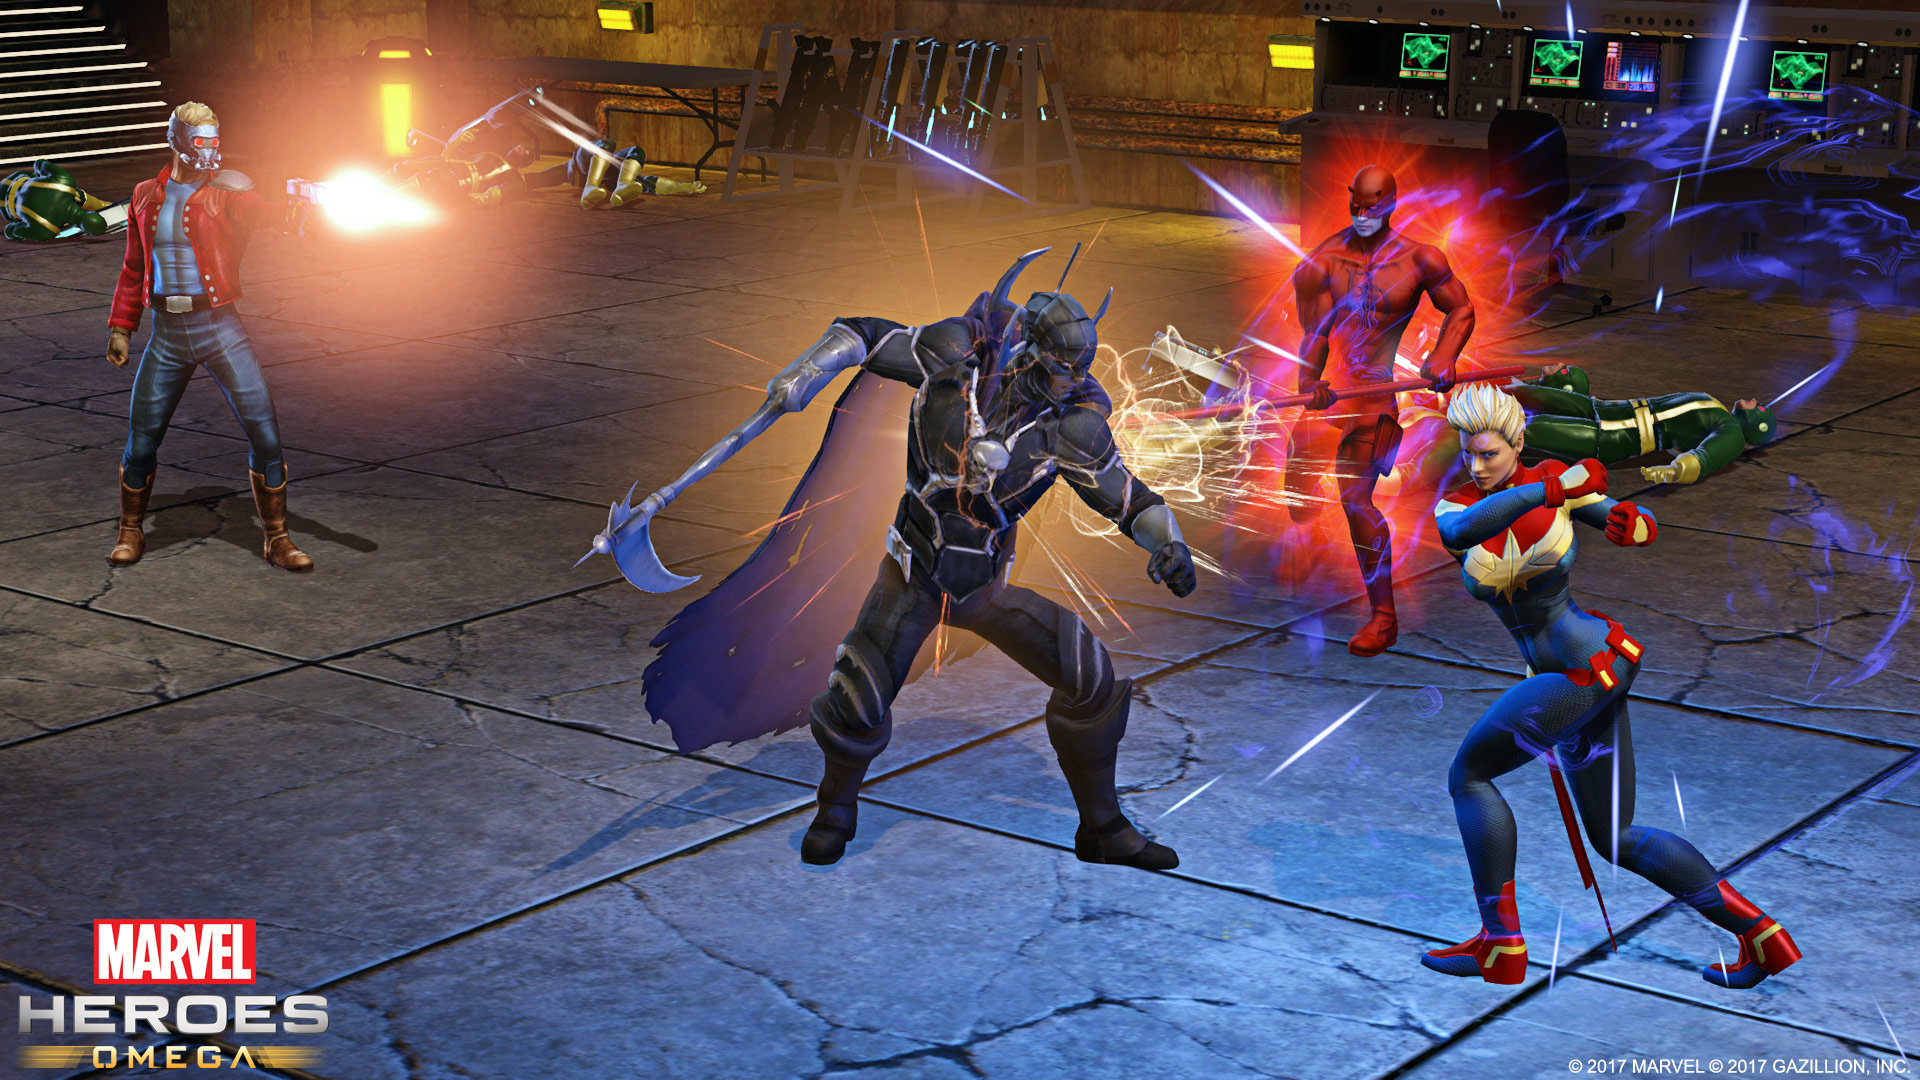 Marvel Heroes Omega Tips Amp Tricks For Beginners In The PS4